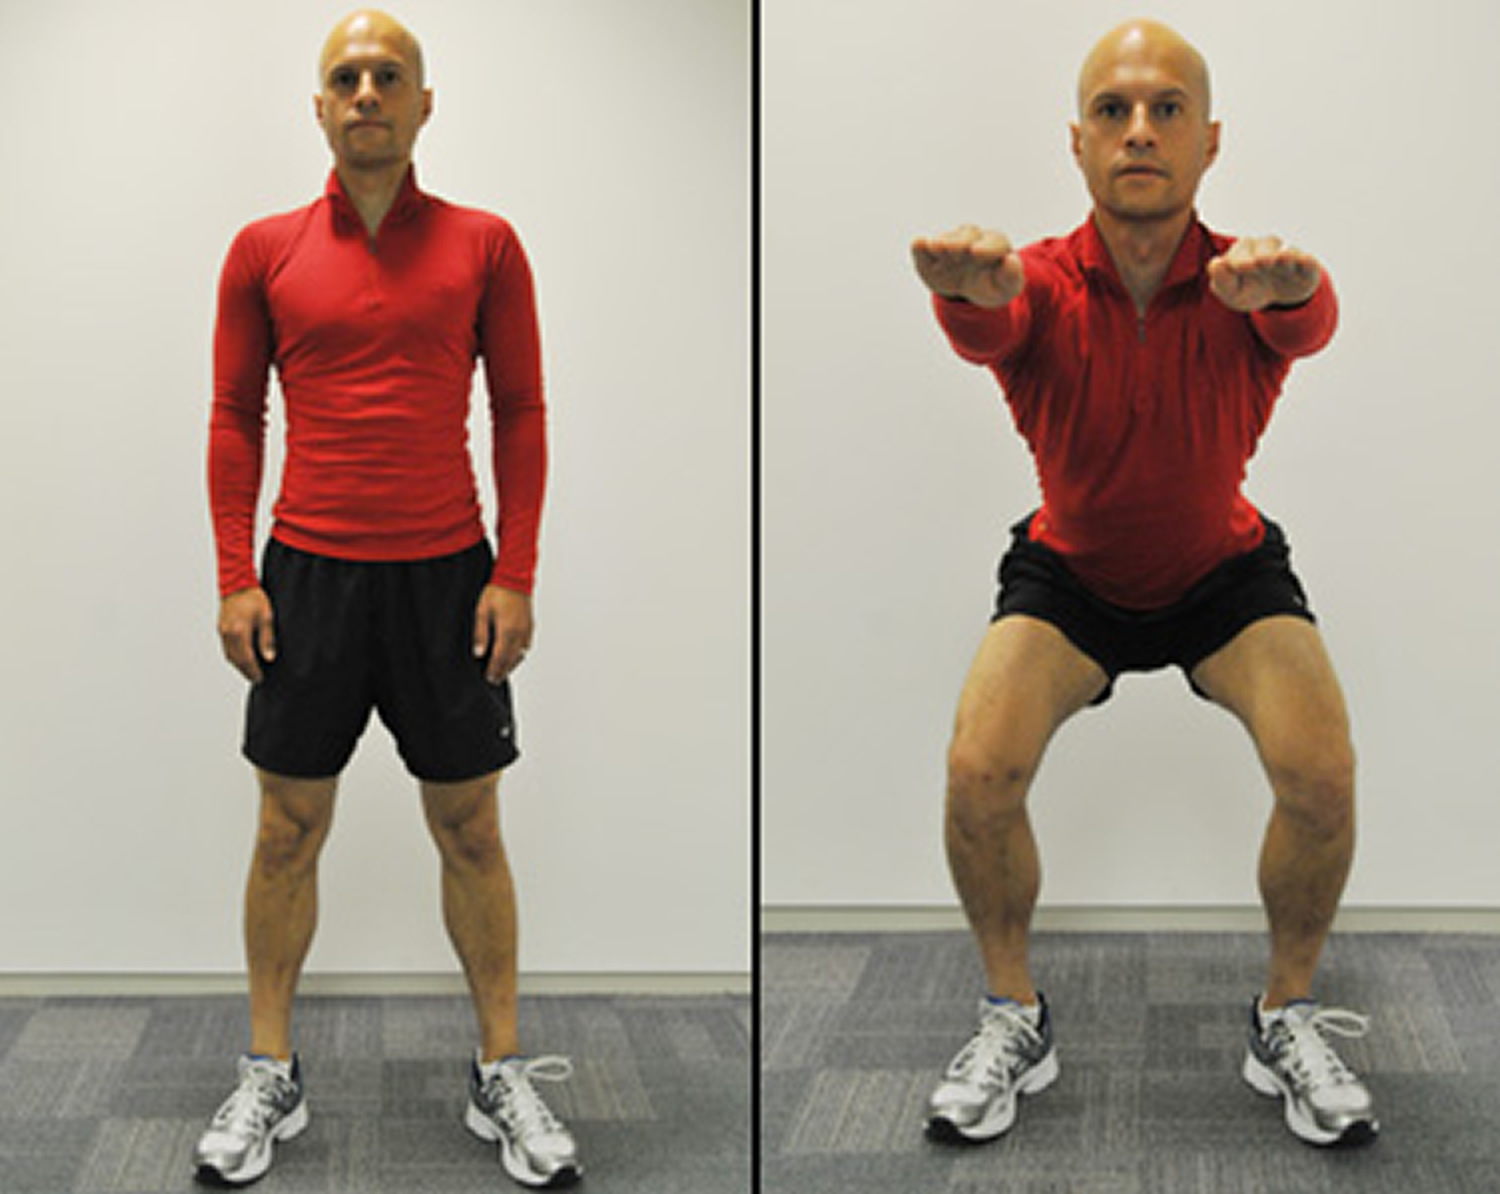 Squats exercise for knee pain